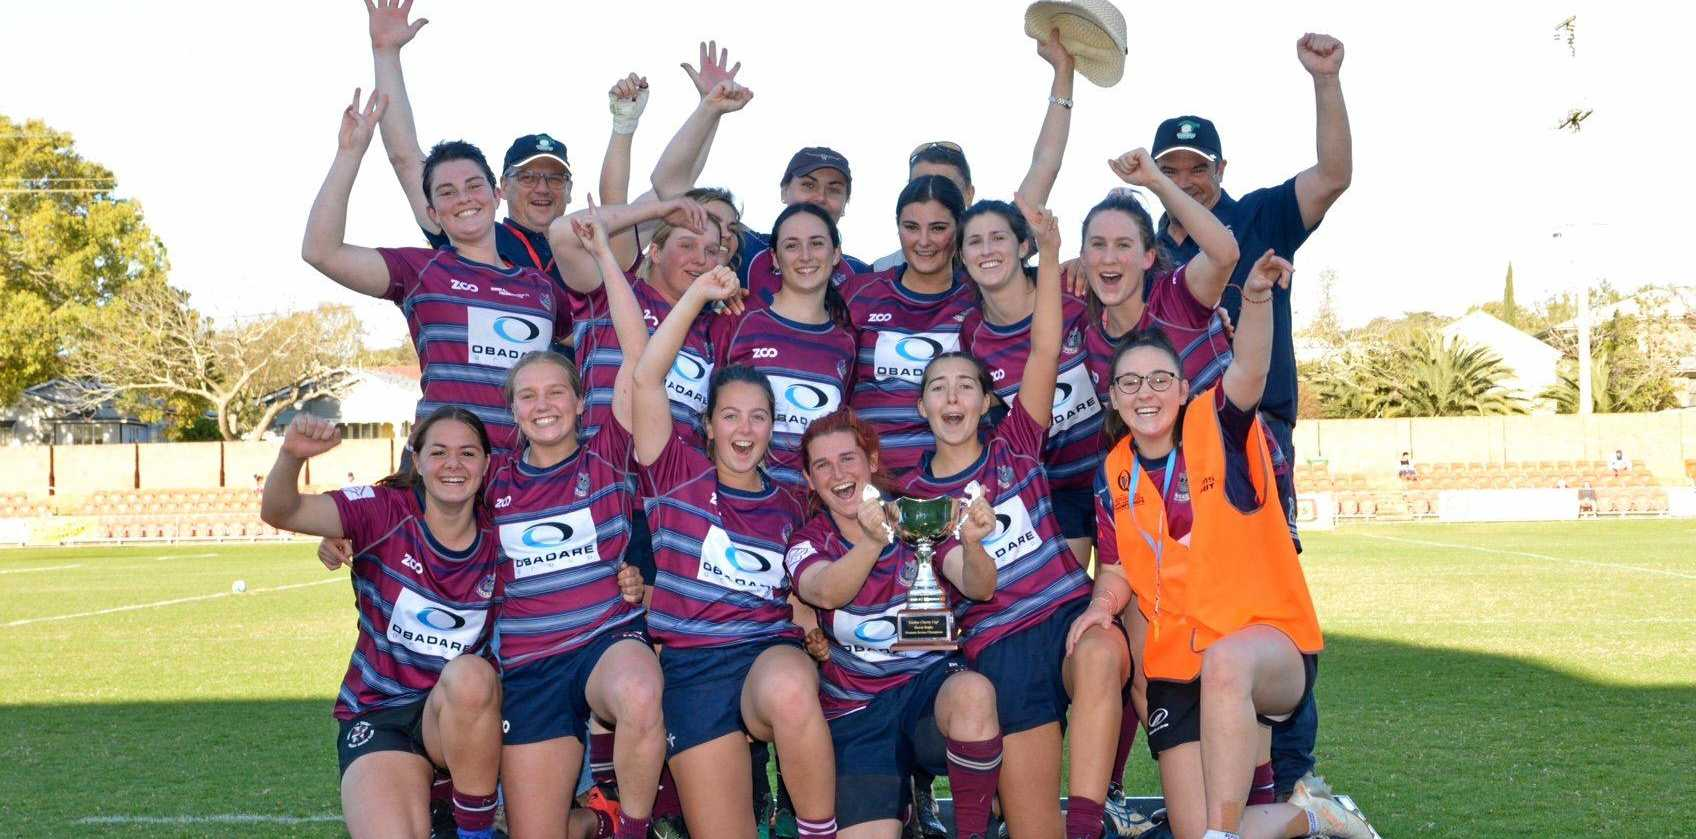 The party starts for Toowoomba Bears after their Emilee Cherry Cup grand-final win today over St George at Clive Berghofer Stadium.